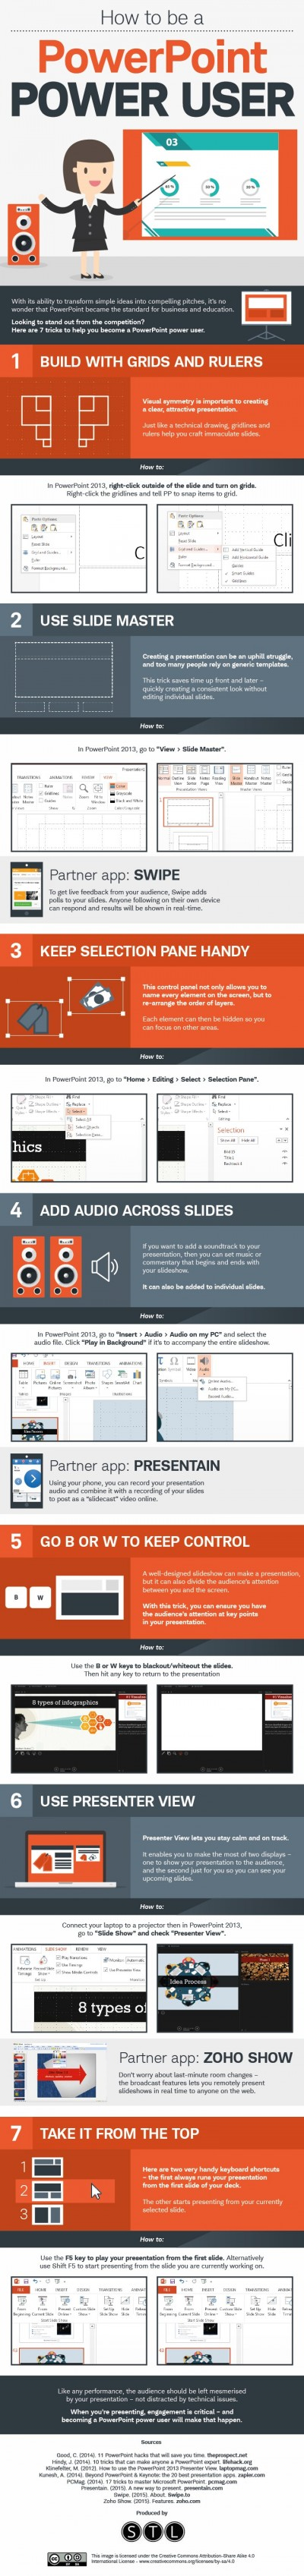 how-to-be-a-powerpoint-power-user